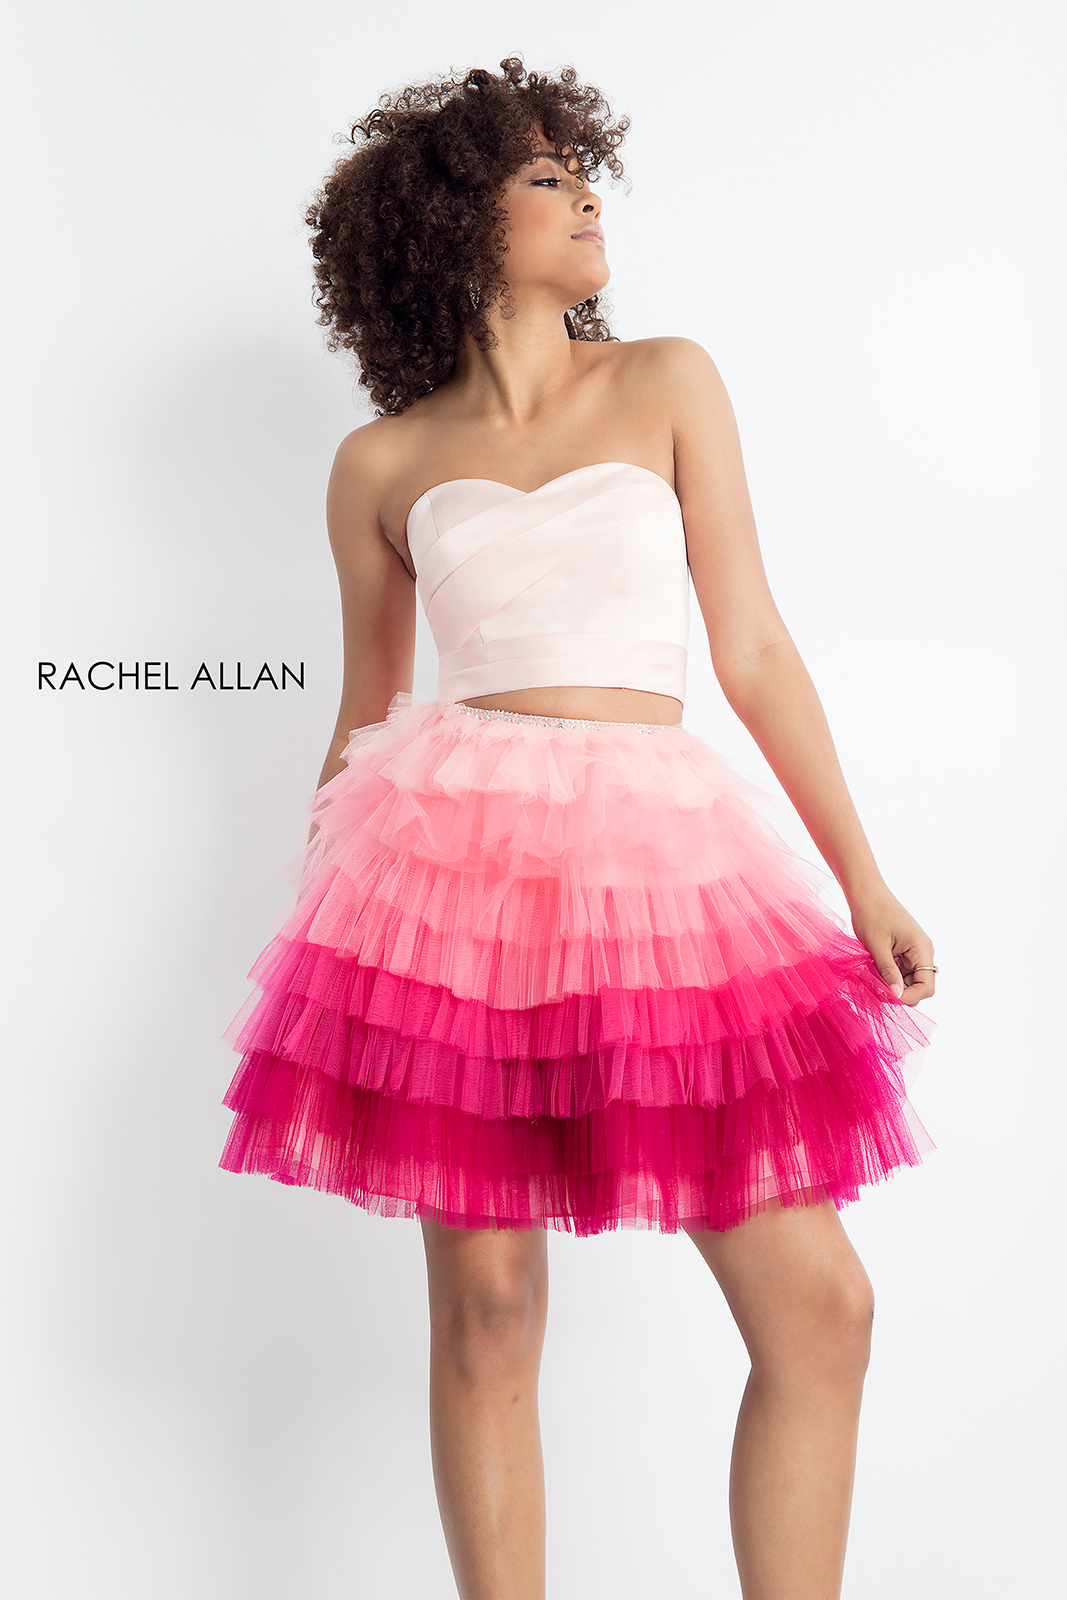 Strapless A-Line Homecoming Dresses in Pink Color